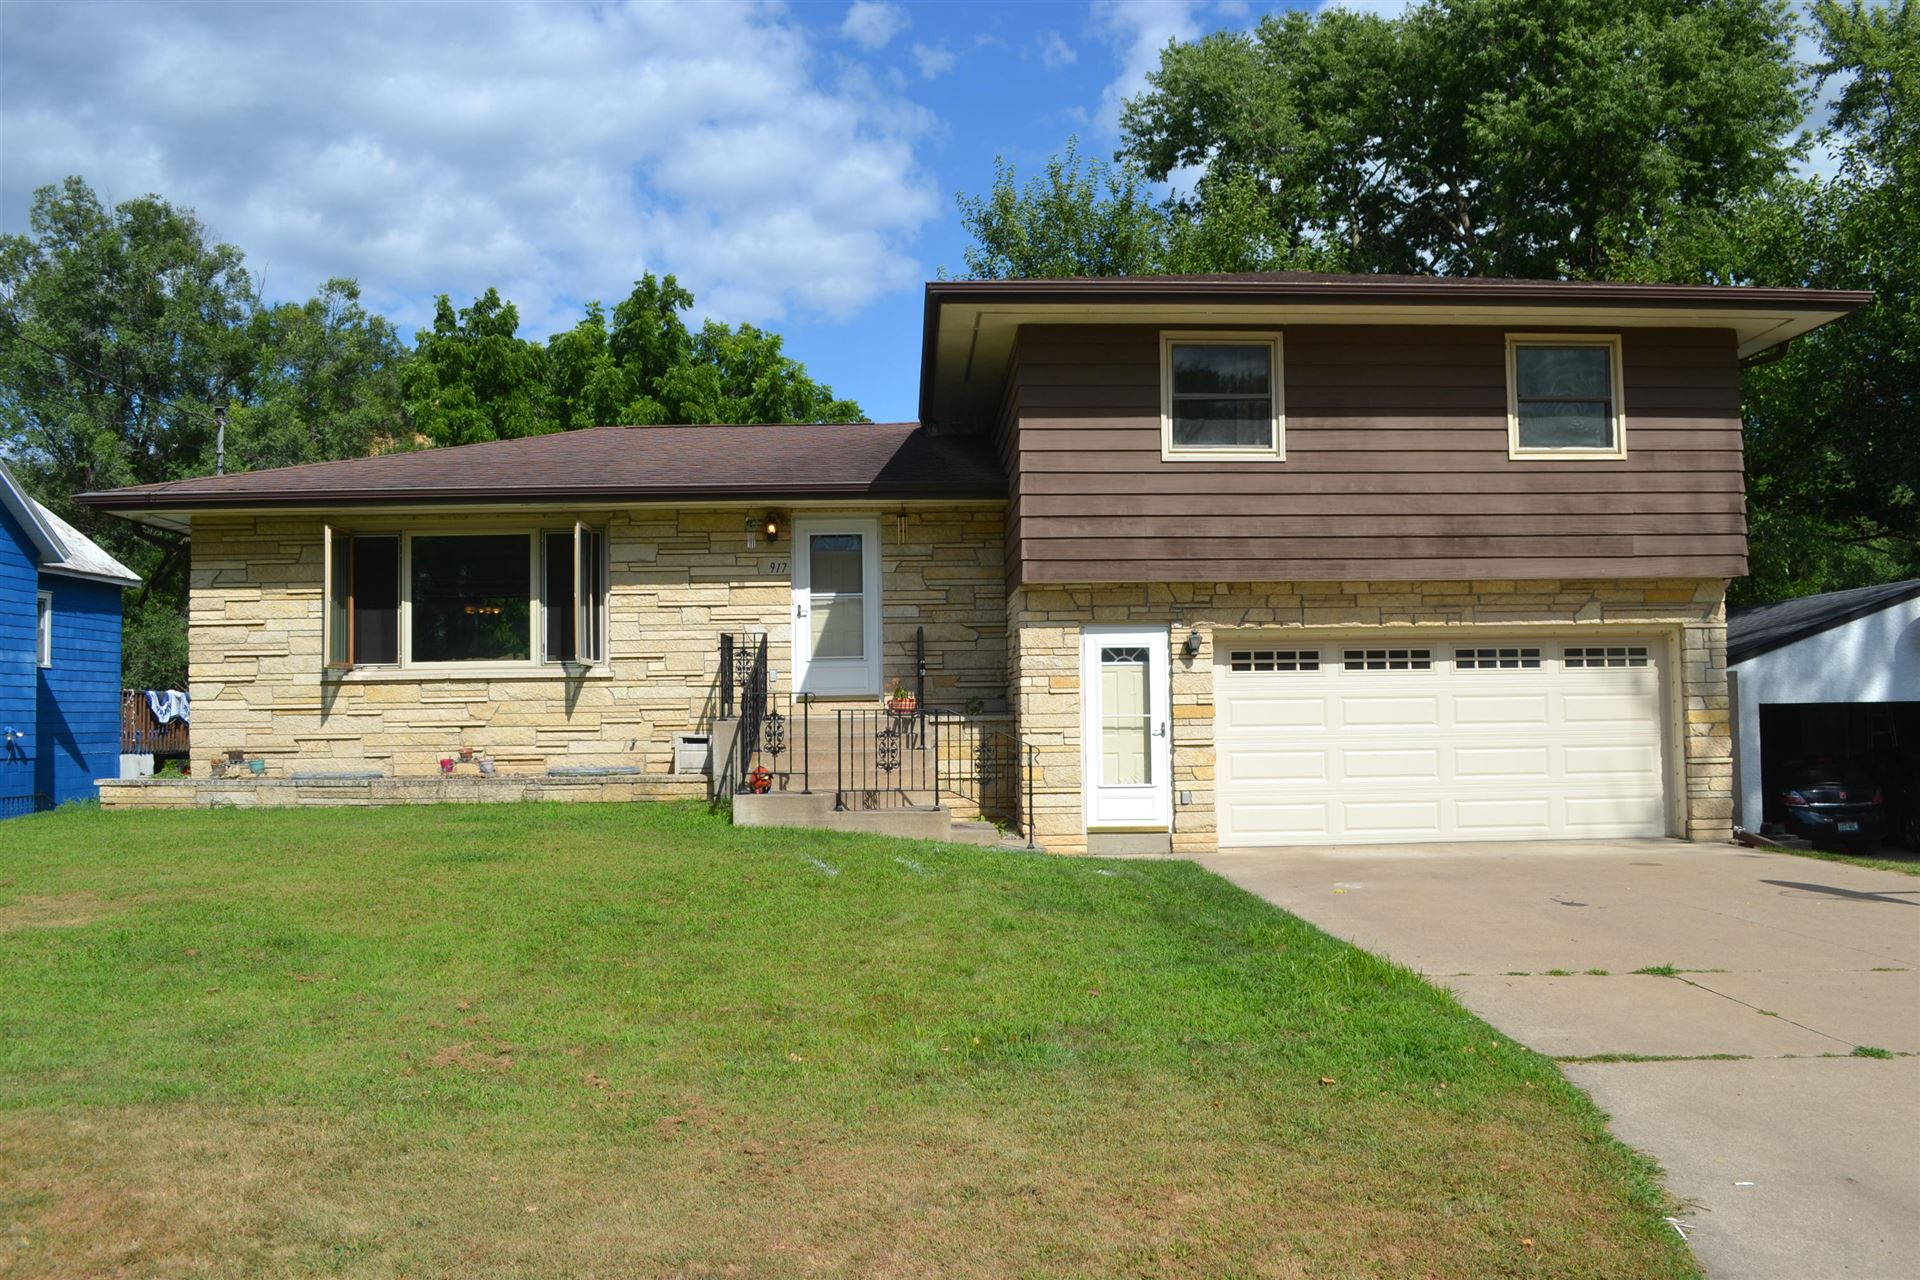 917 26th ST S, La Crosse, WI 54601 - MLS#: 1702690